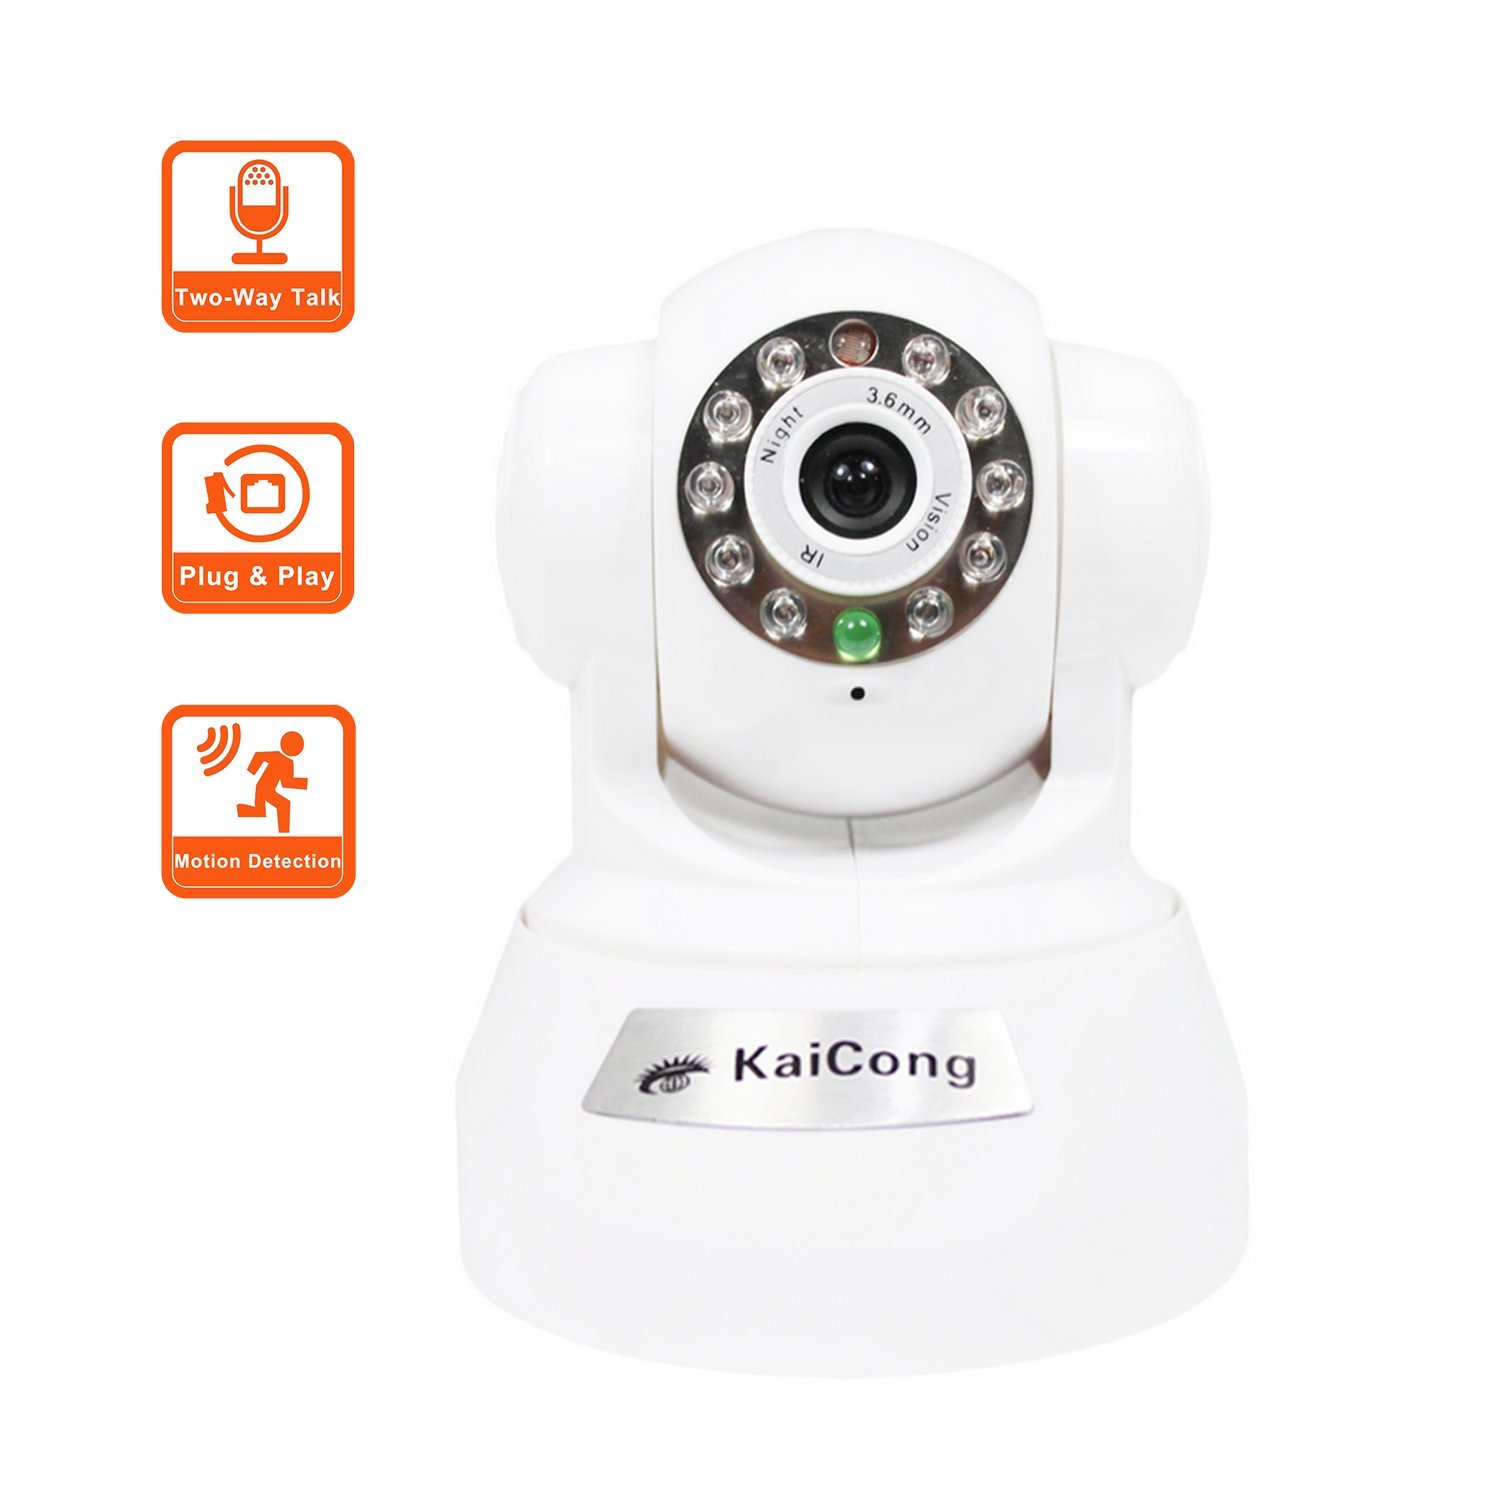 KaiCong Sip1602 Plug & Play/Pan & Tilt IP Camera Wireless Motion Detection Mobile View Network Camera With 20 Feet Night Vision3.6mm Lens